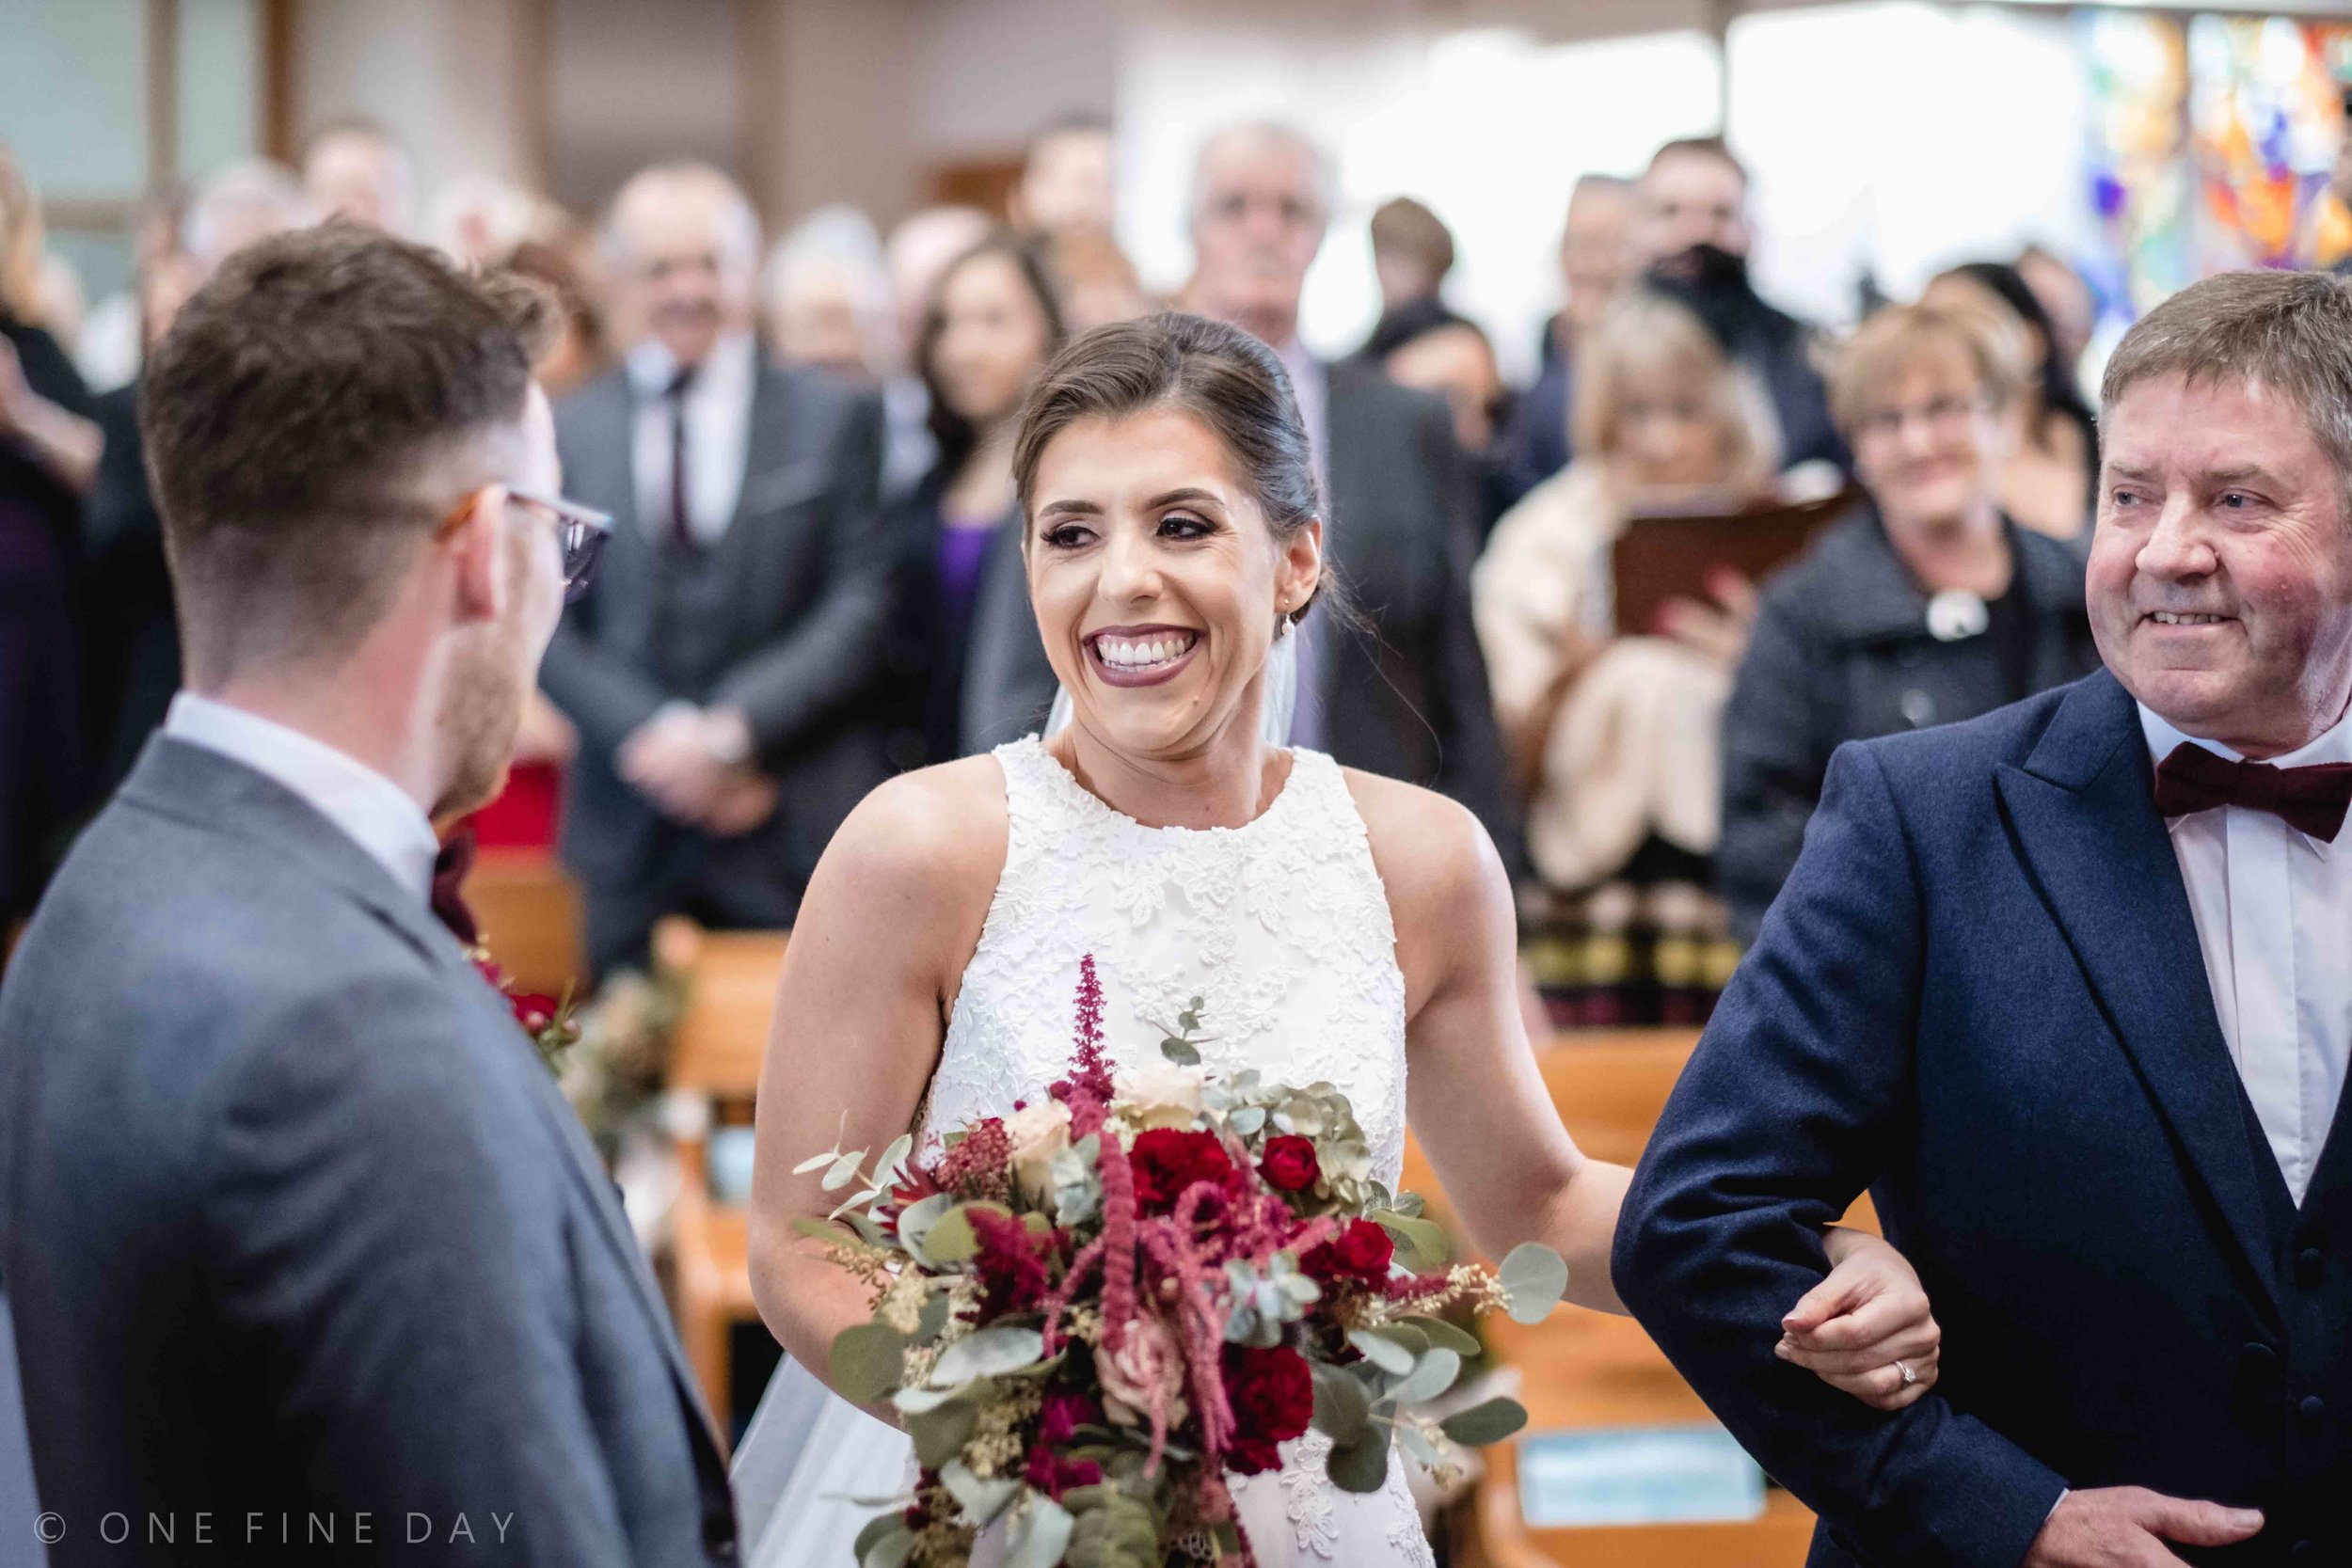 Bride sees groom for first time at wedding ceremony